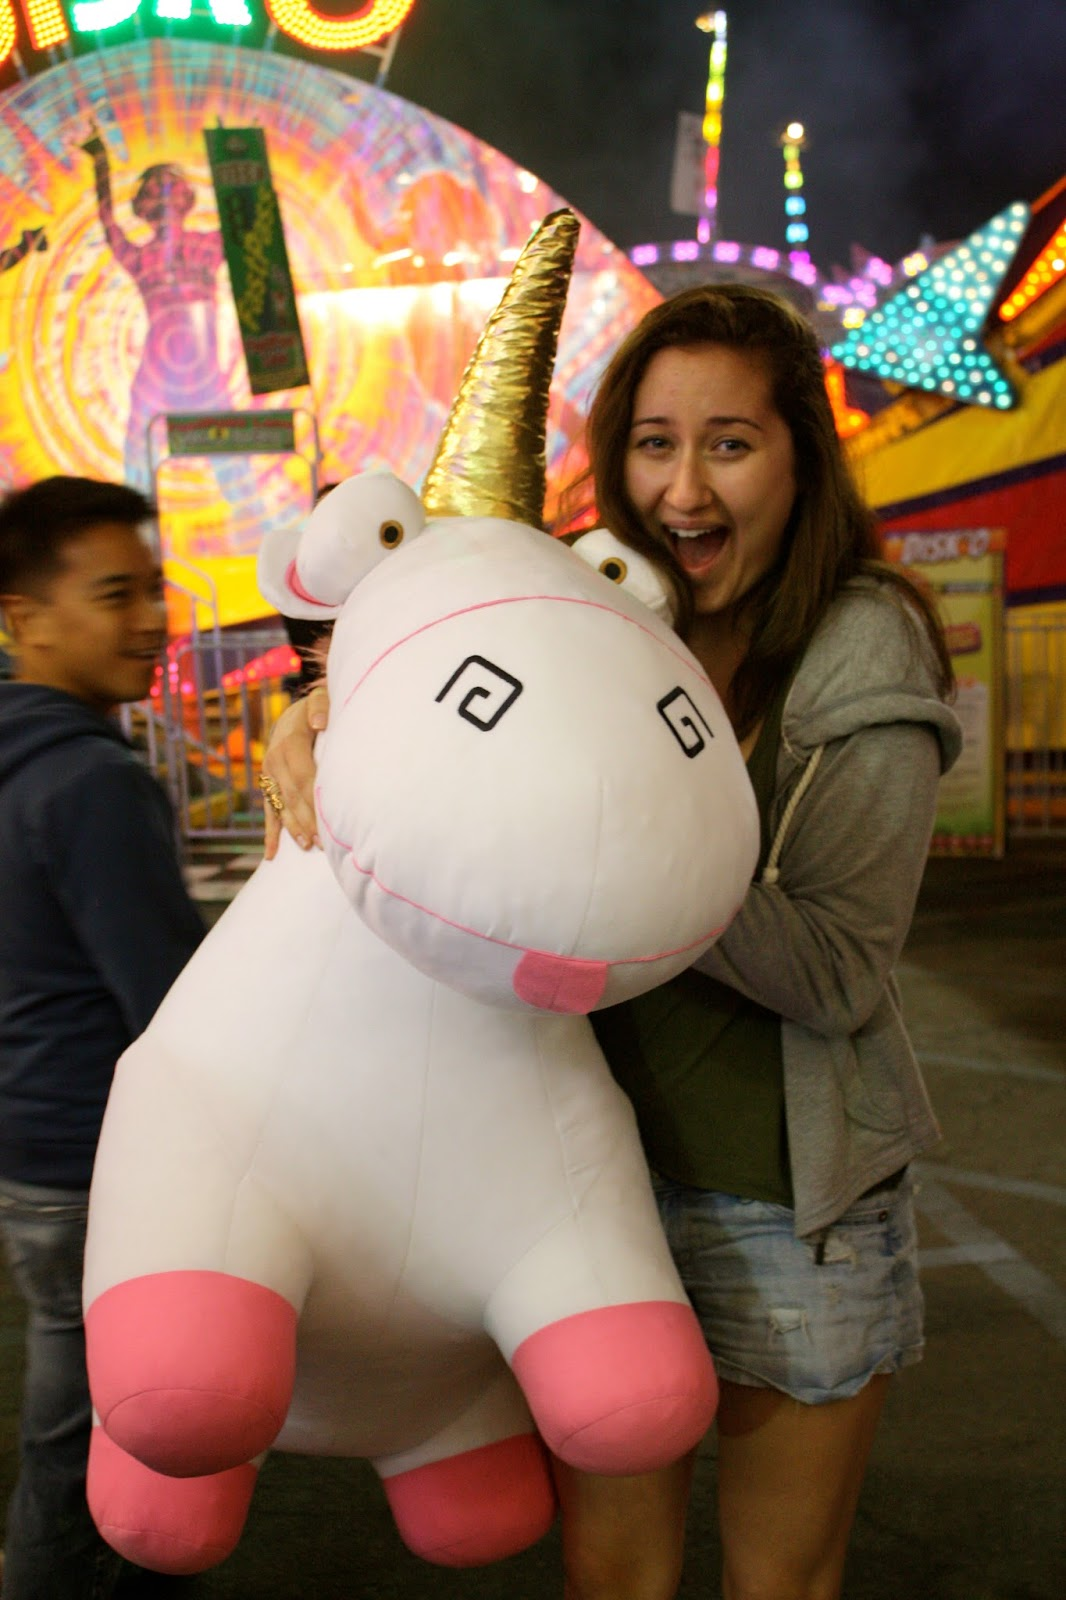 Oc fair prizes